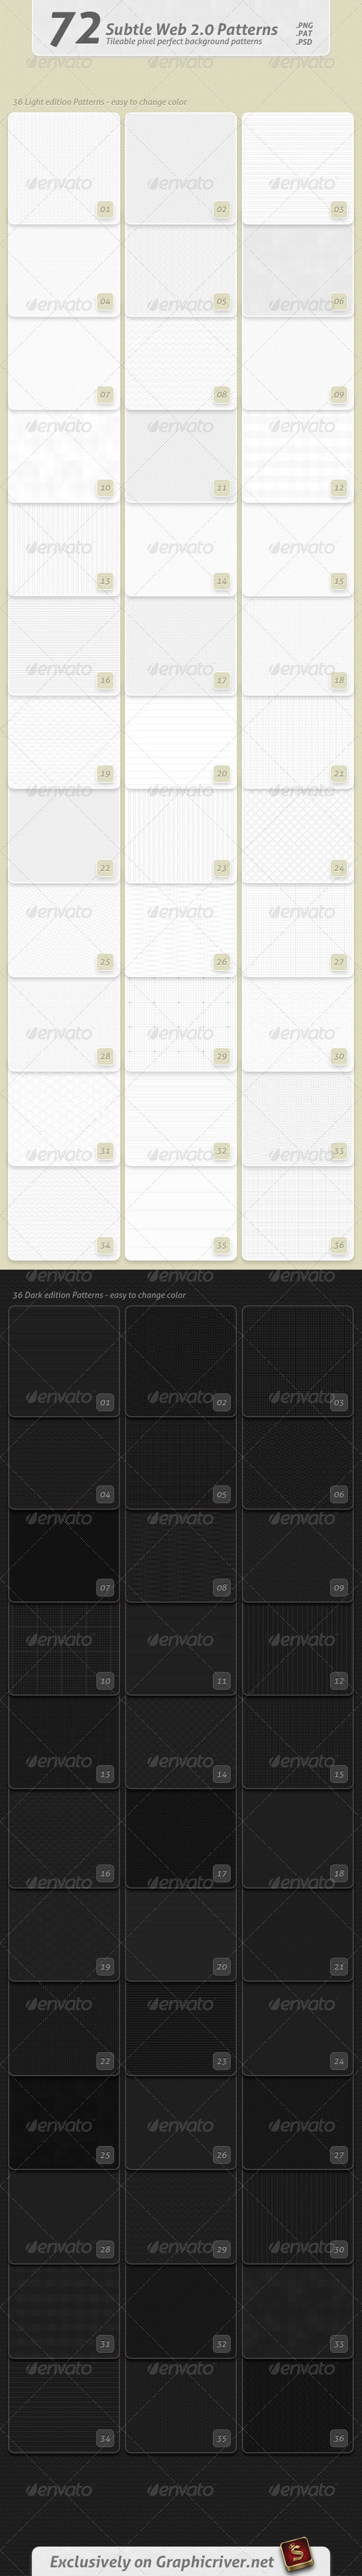 GraphicRiver 72 Subtle Web 2.0 Patterns 2386669